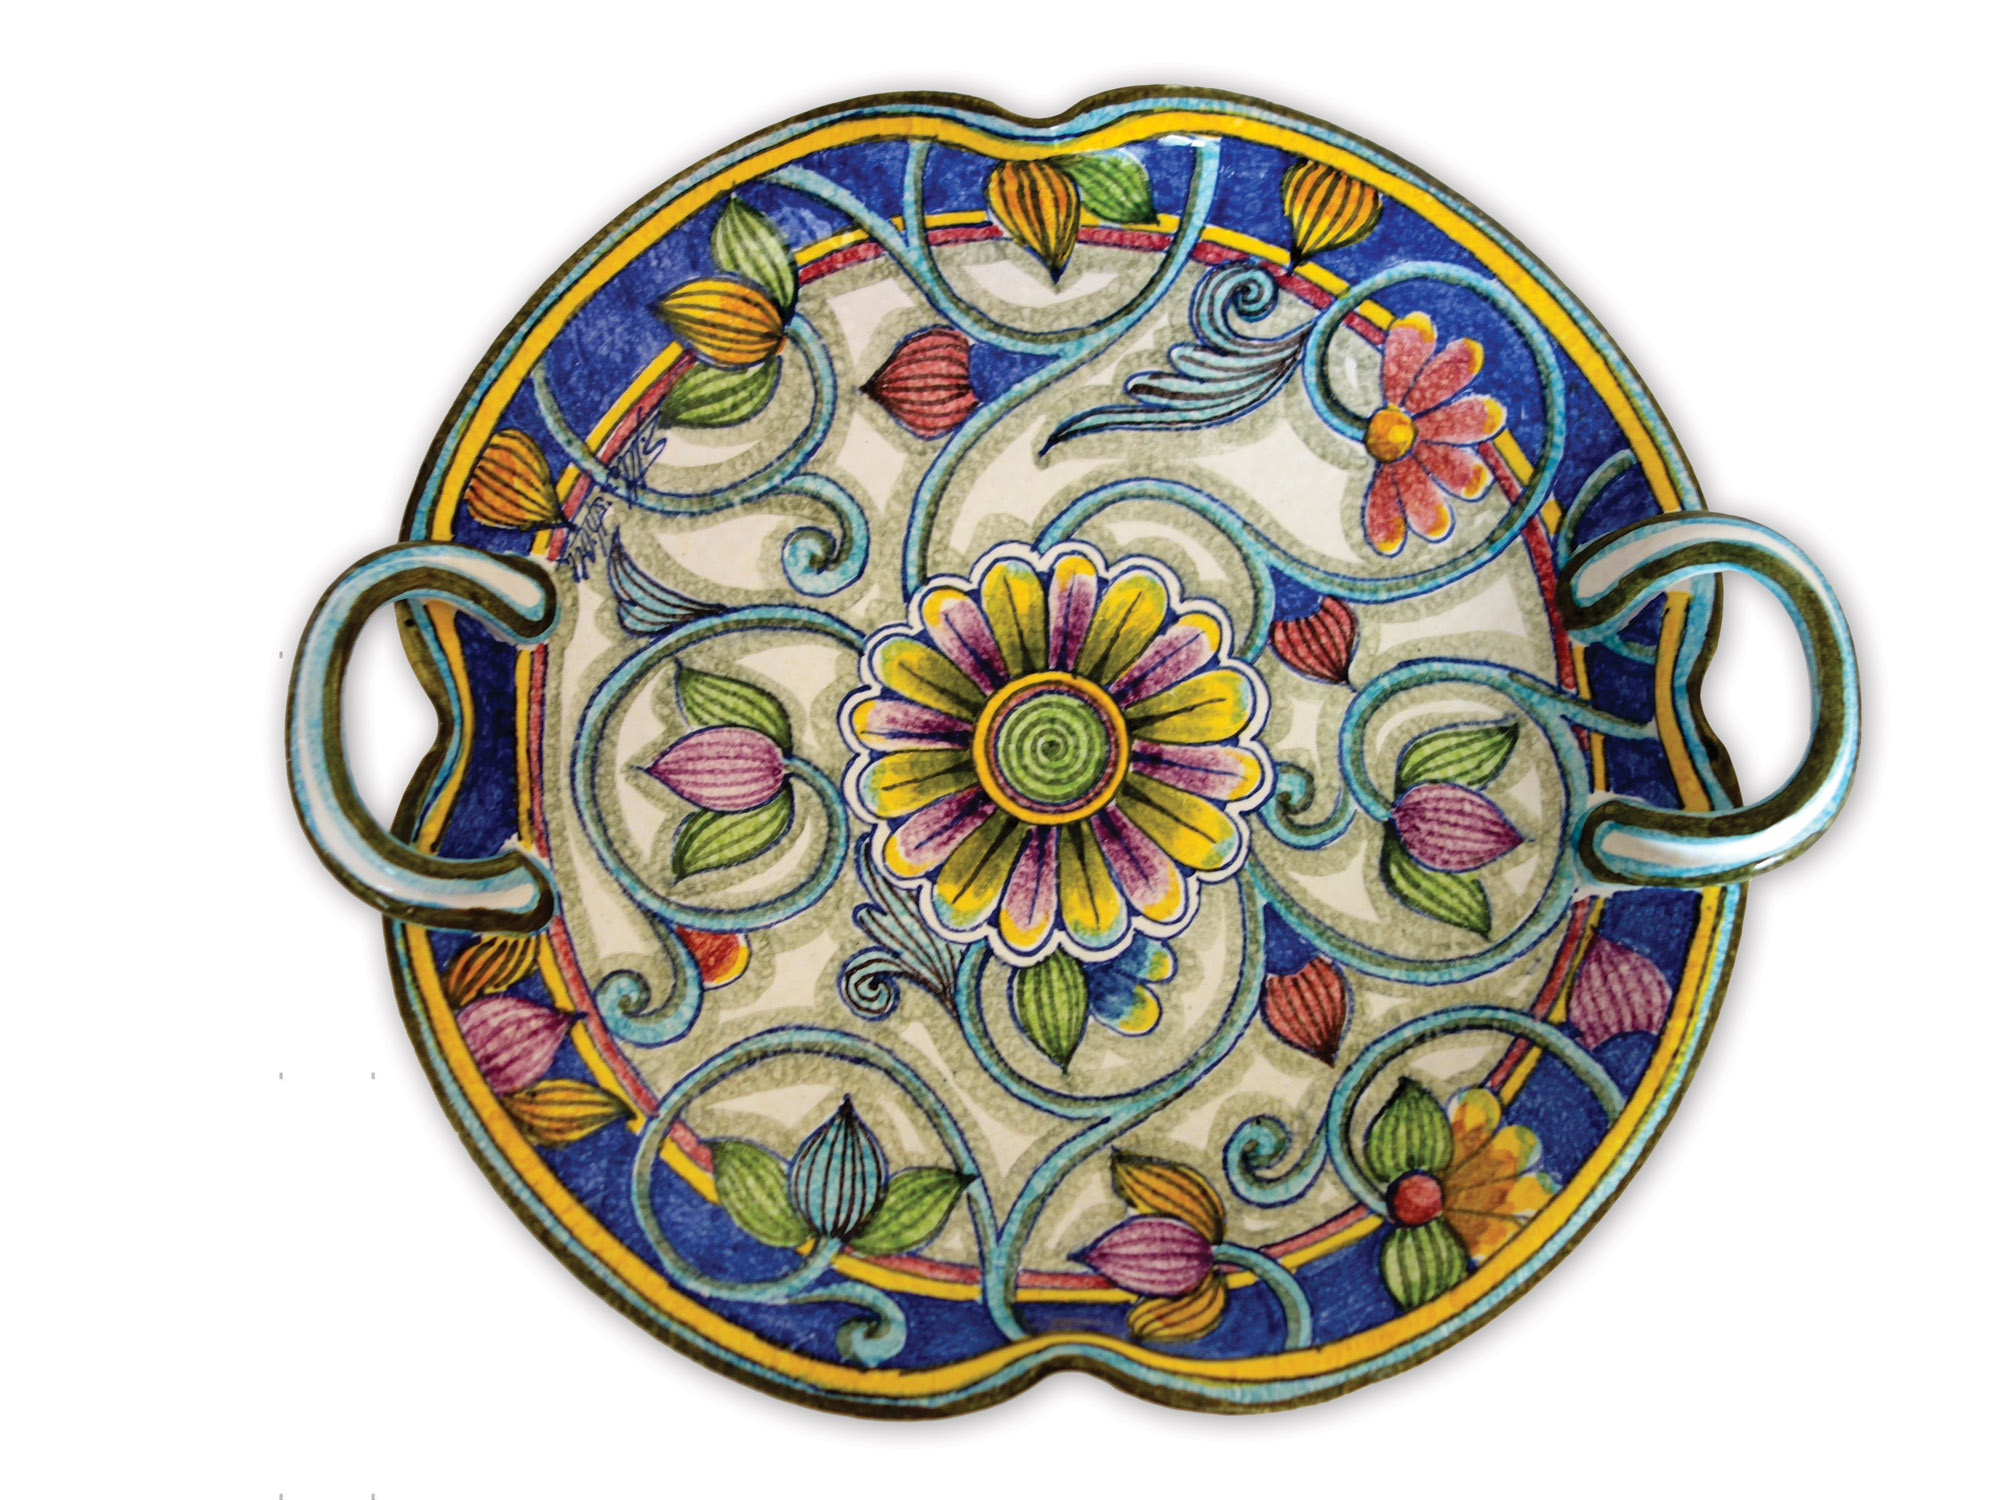 Italian pottery by Tuscan Designs